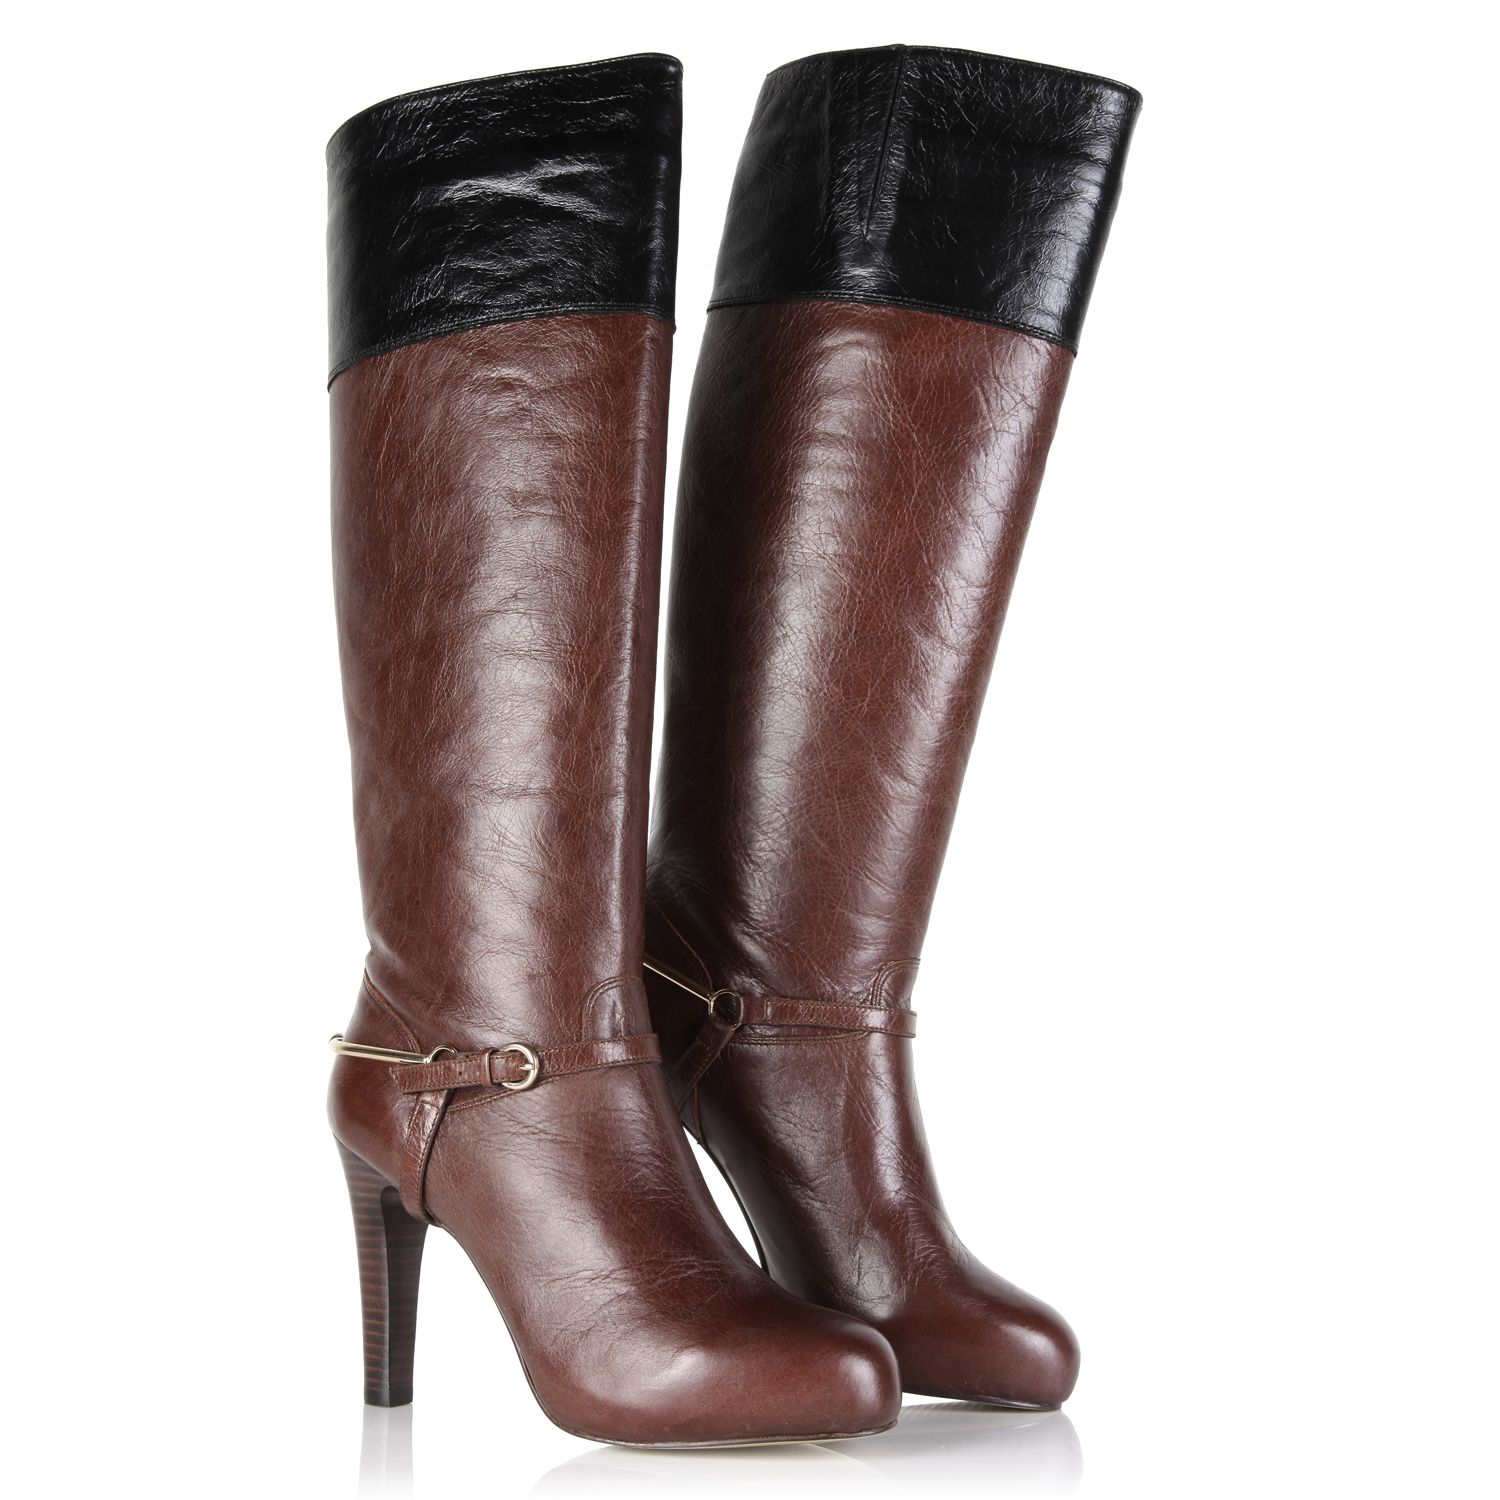 boots 1 Moda In Pelles Tips For 2012   2013 Autumn/Winter! How To Wear Boots In Style This Season!